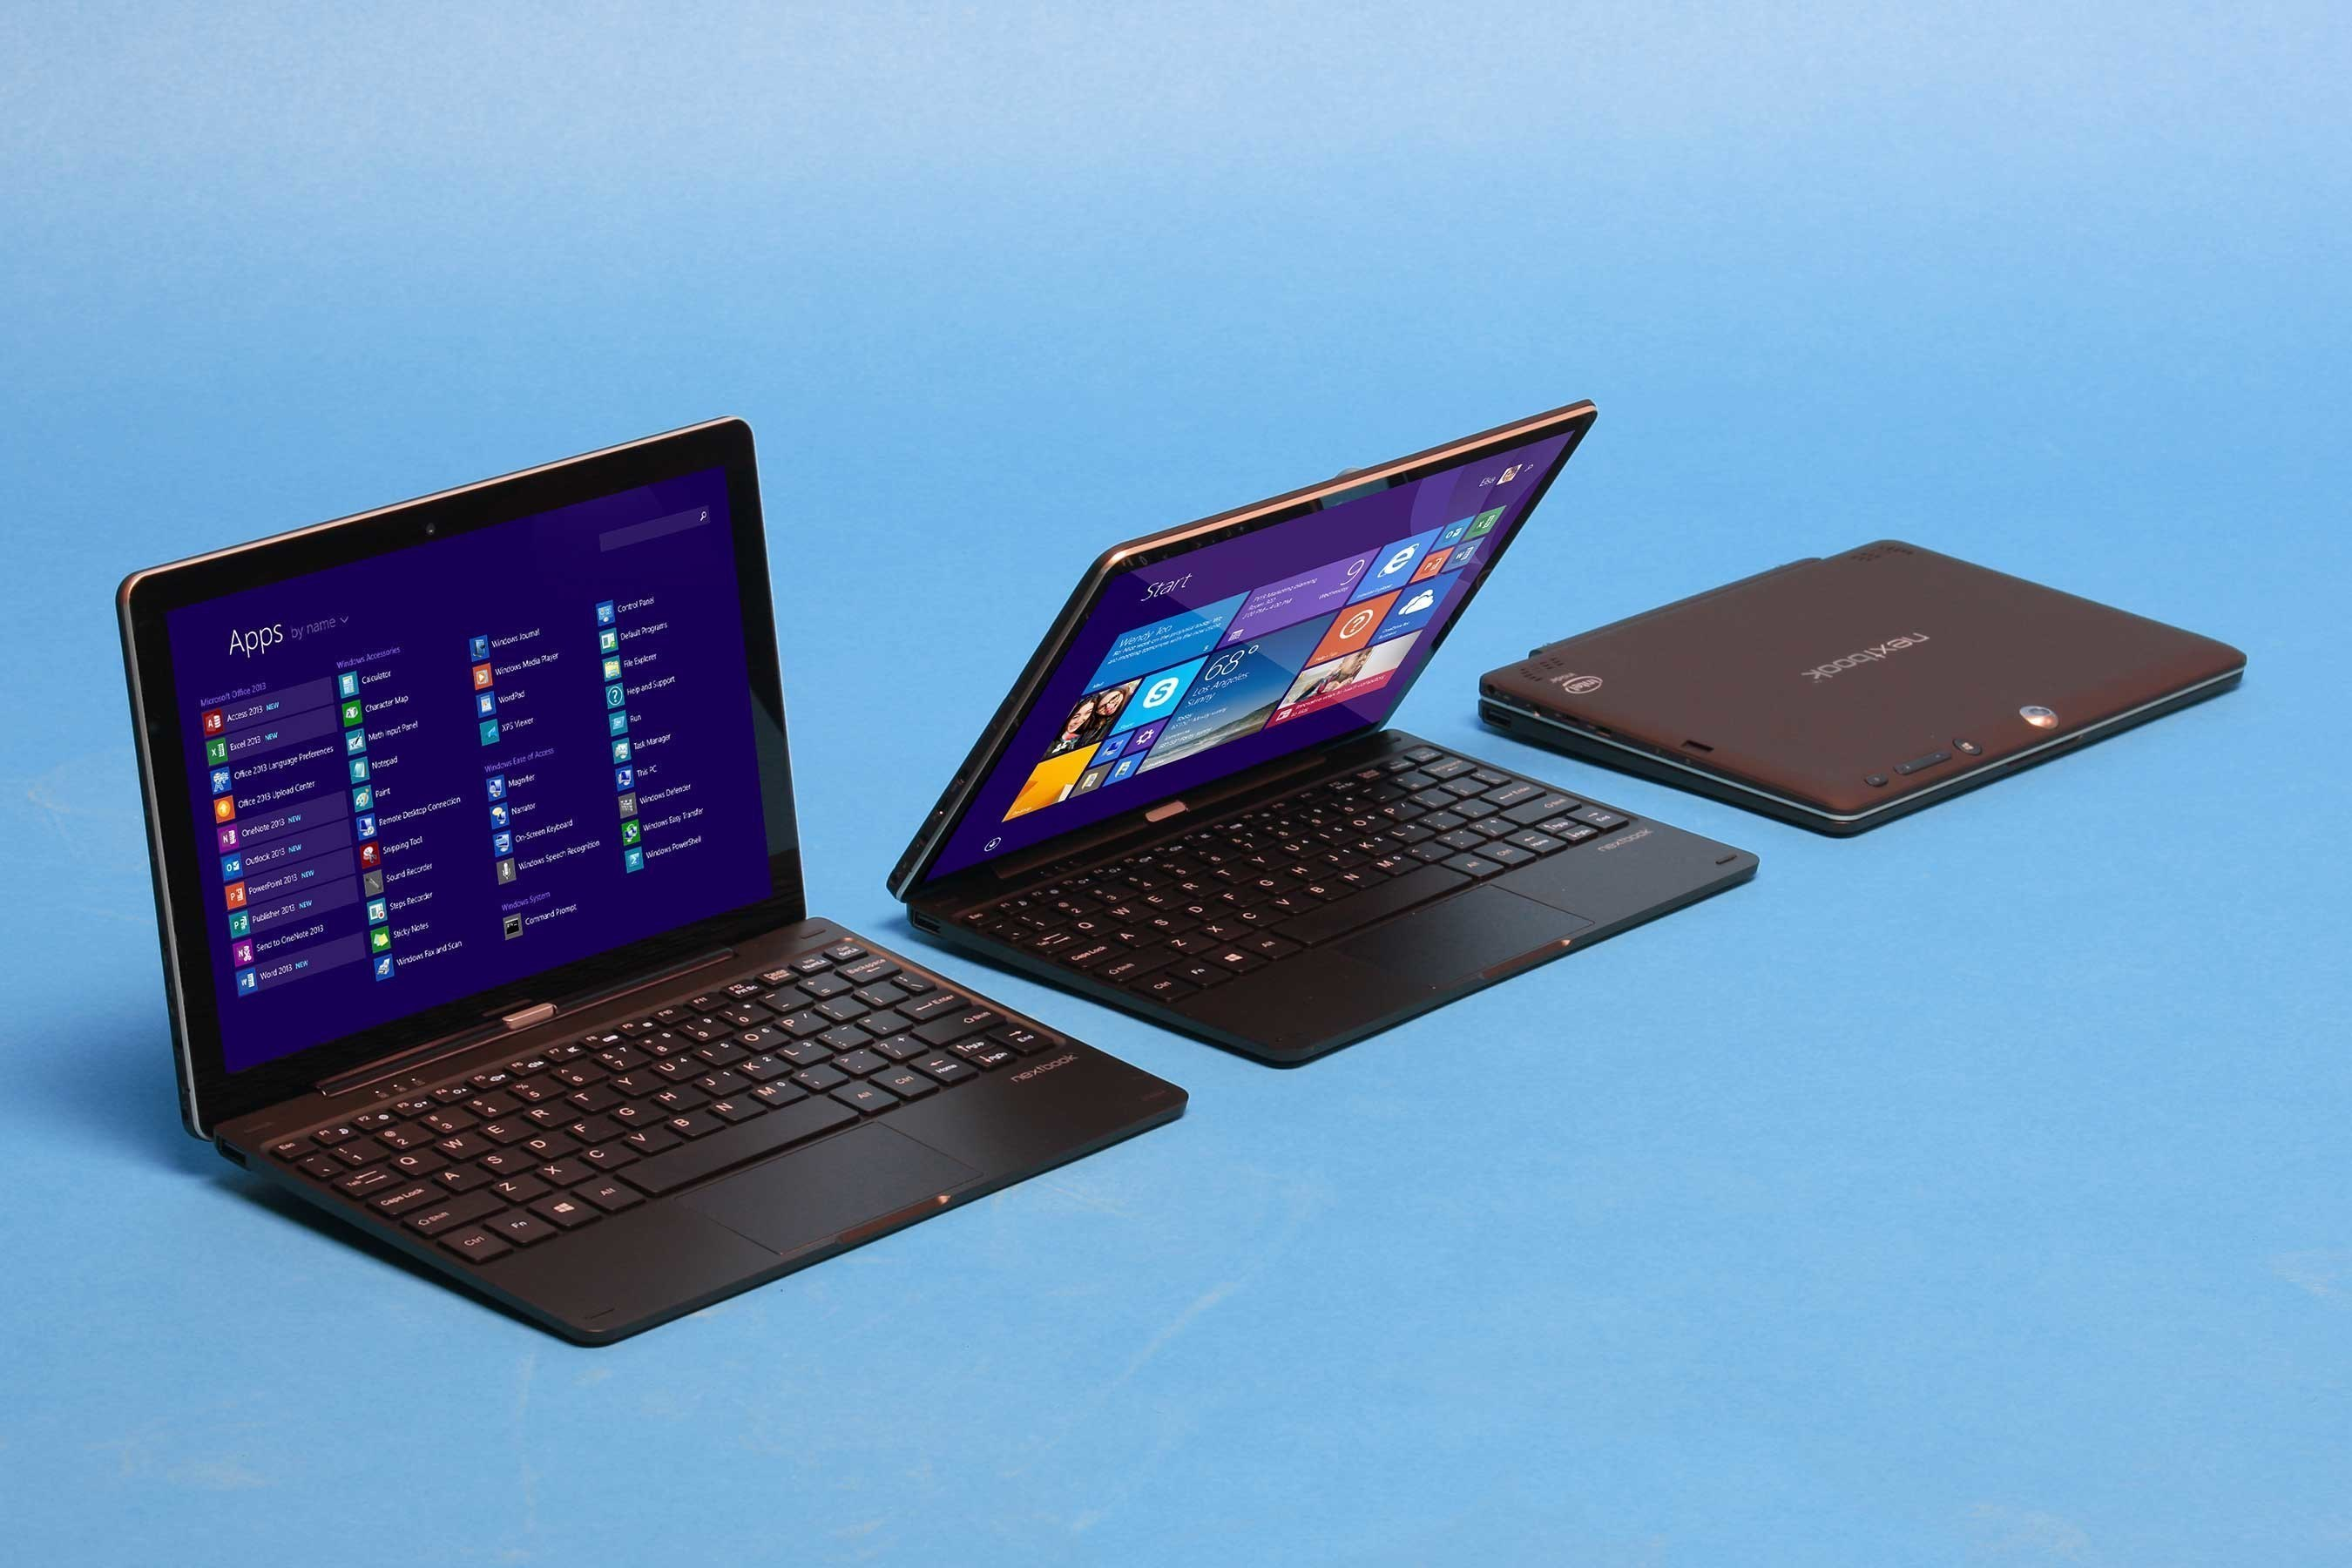 Nextbook Flexx 10 is This Summer's Perfect Travel Companion